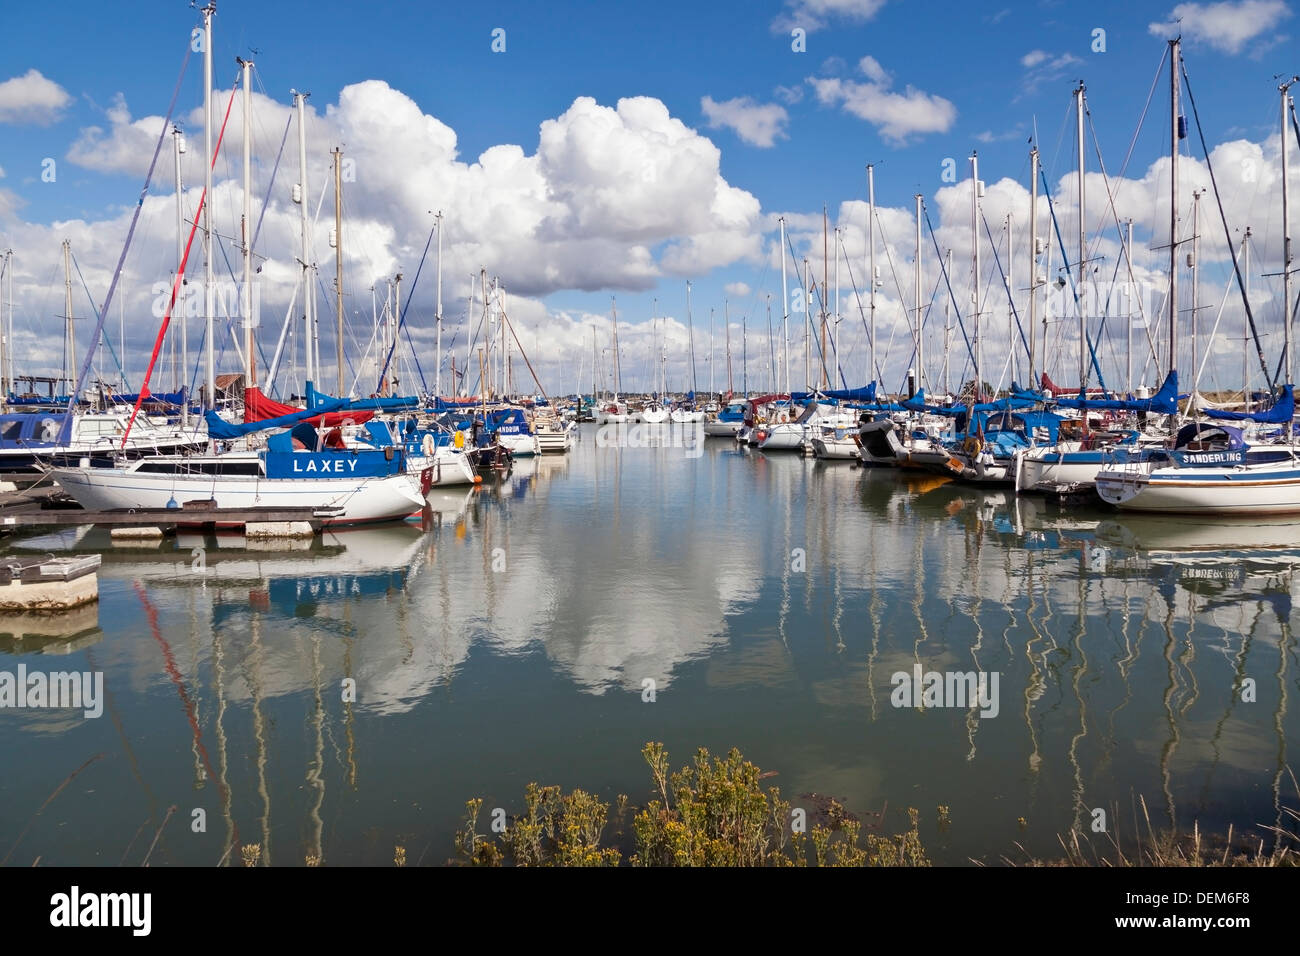 Boat moored at Tollesbury marina, Essex, England - Stock Image